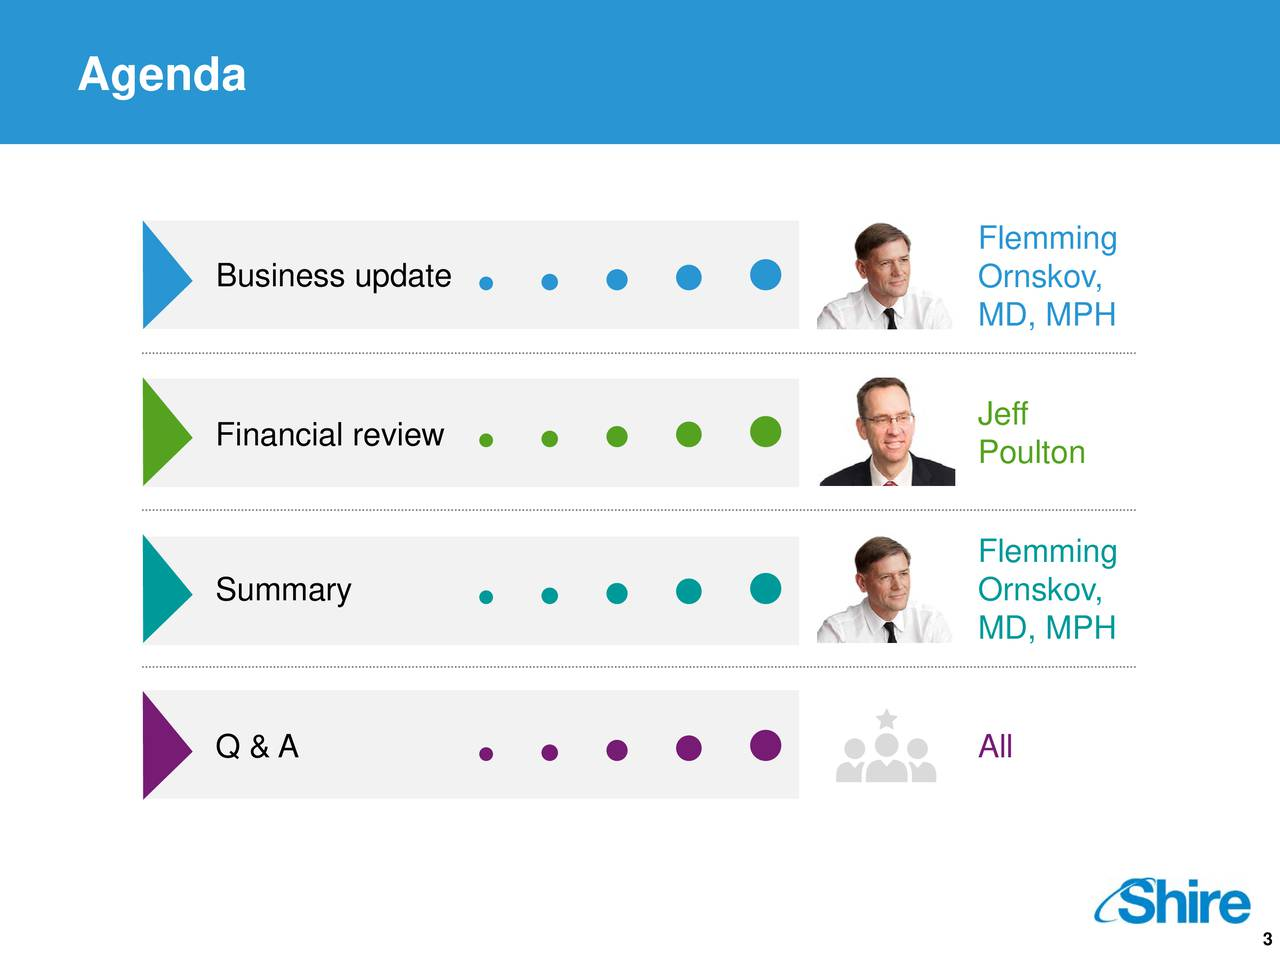 Flemming Business update Ornskov, MD, MPH Jeff Financial review Poulton Flemming Summary Ornskov, MD, MPH Q & A All